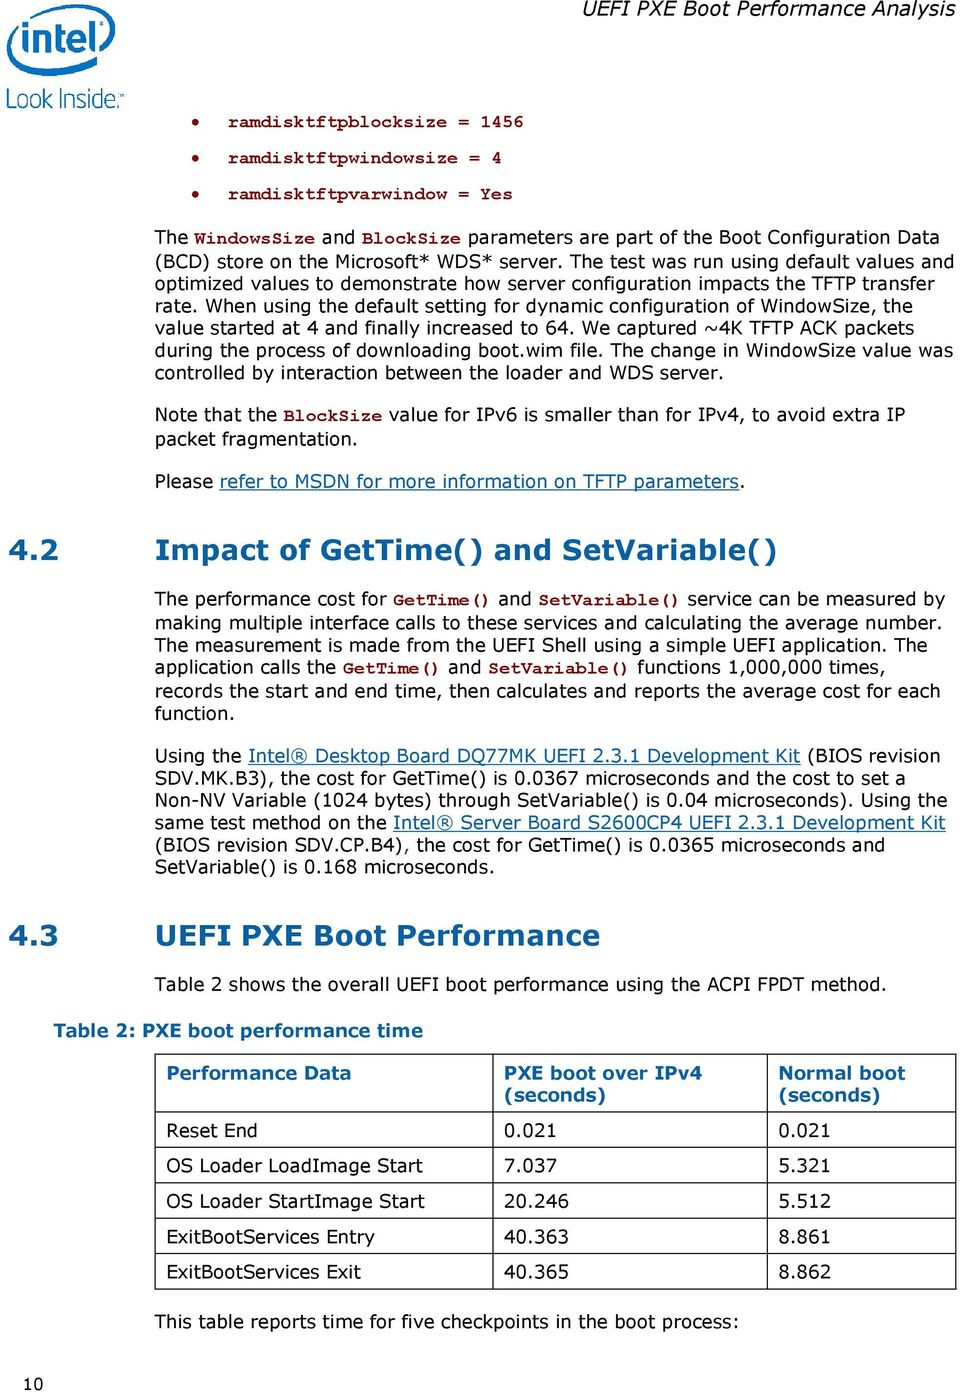 UEFI PXE Boot Performance Analysis - PDF